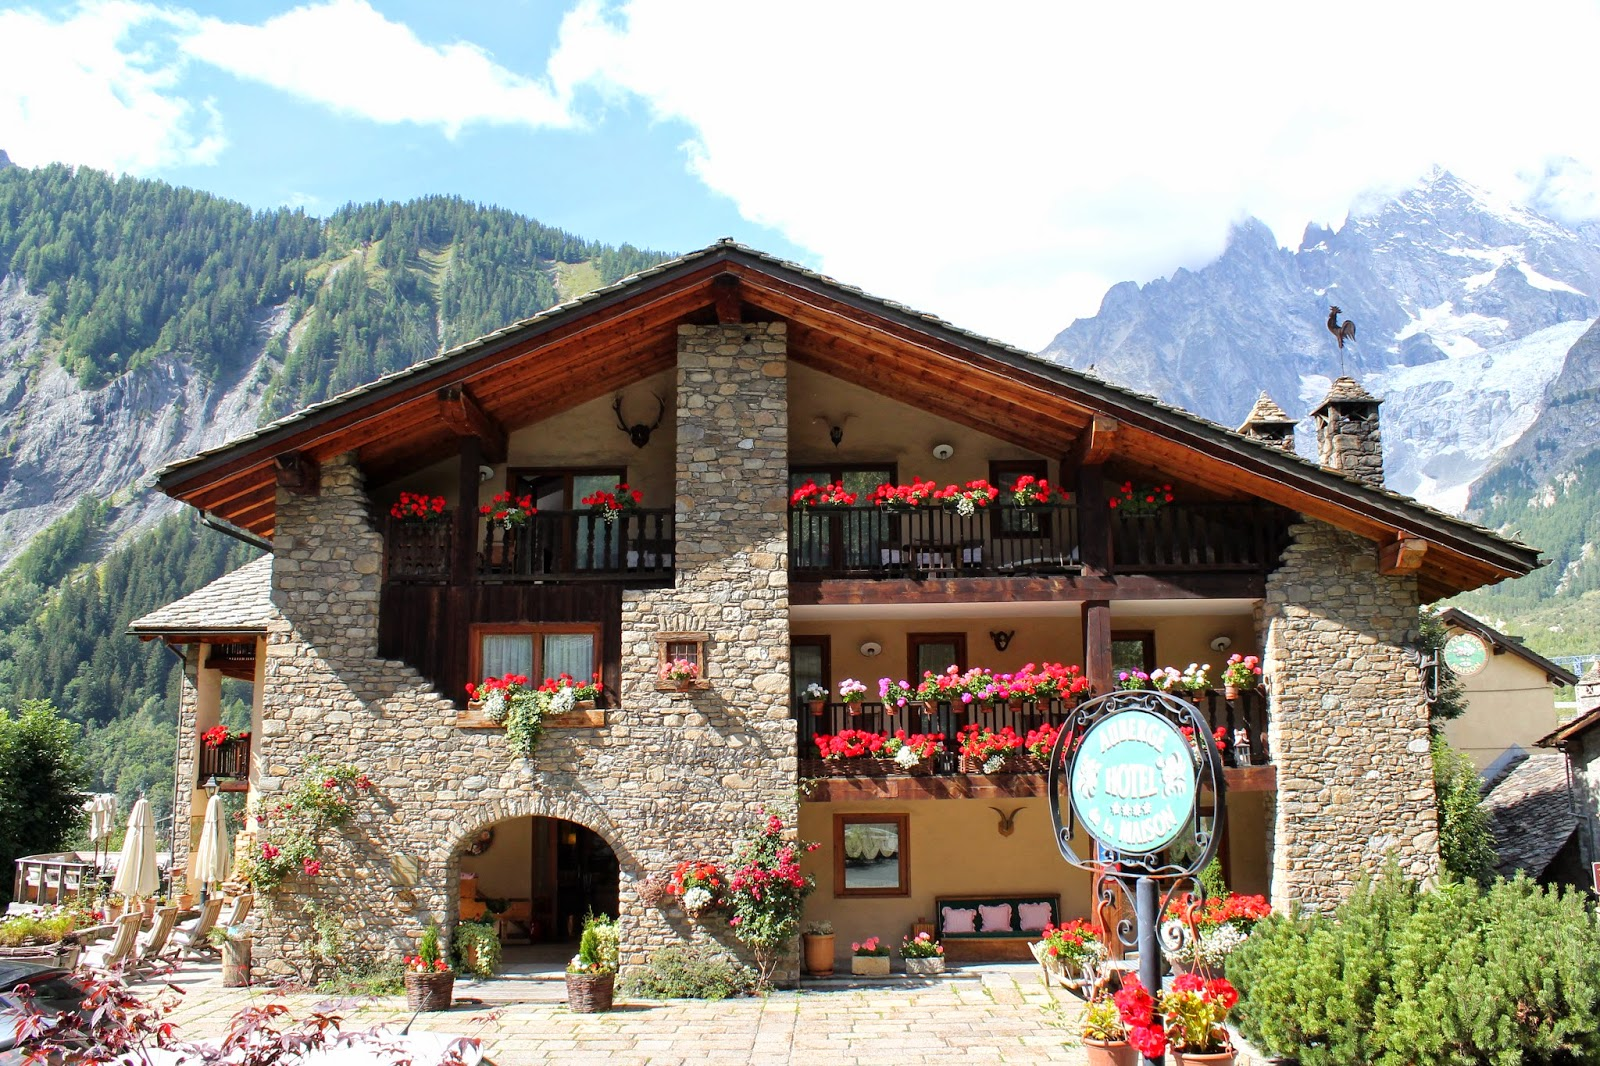 Bella pummarola courmayeur photo diary pt 1 for Auberge de la maison courmayeur tripadvisor